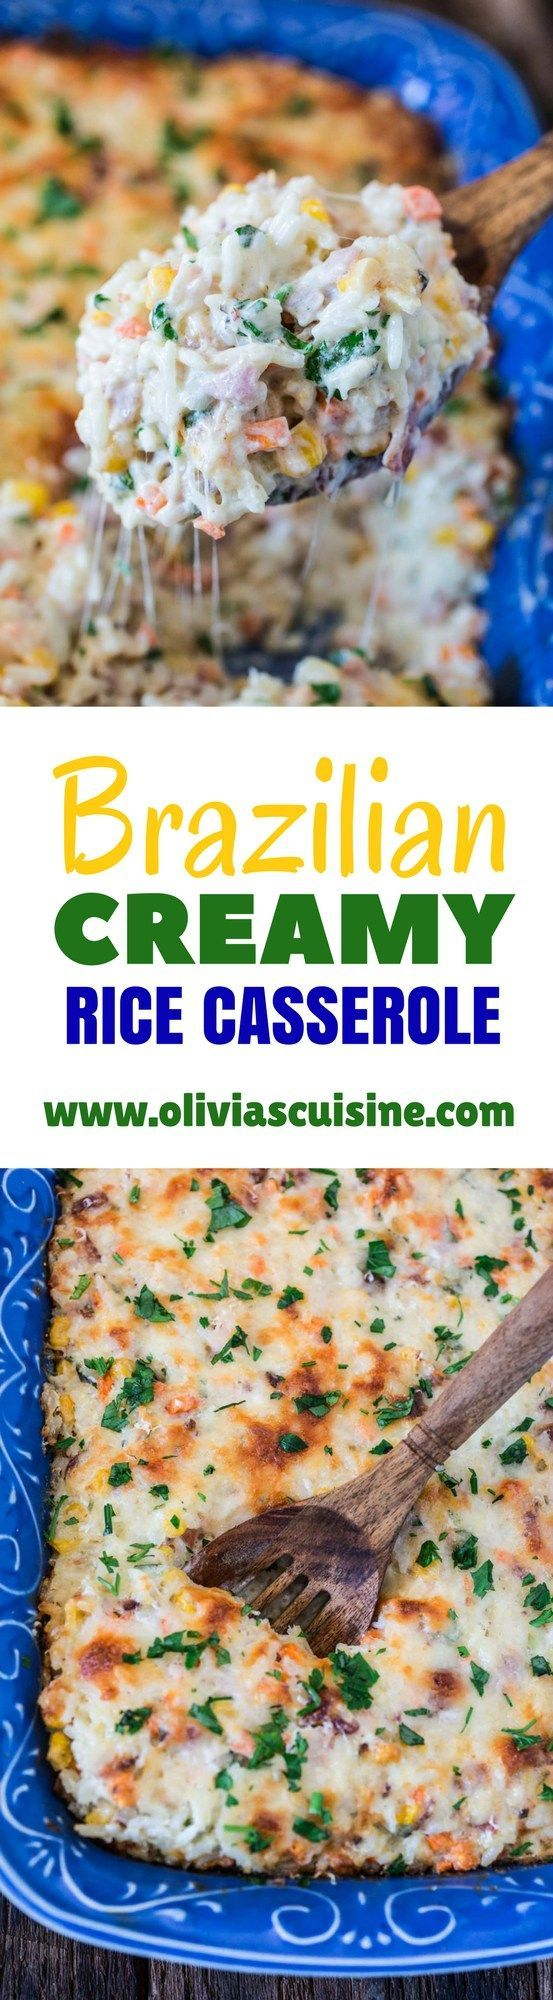 Brazilian Creamy Rice Casserole | www.oliviascuisine.com | This Brazilian Creamy Rice Casserole is not only delicious but VERY easy and quick to prepare. It is ready in 20 minutes and is a great way to use up the leftovers in your fridge! (In partnership with @successrice. ) #Back2SchoolSuccess #ad